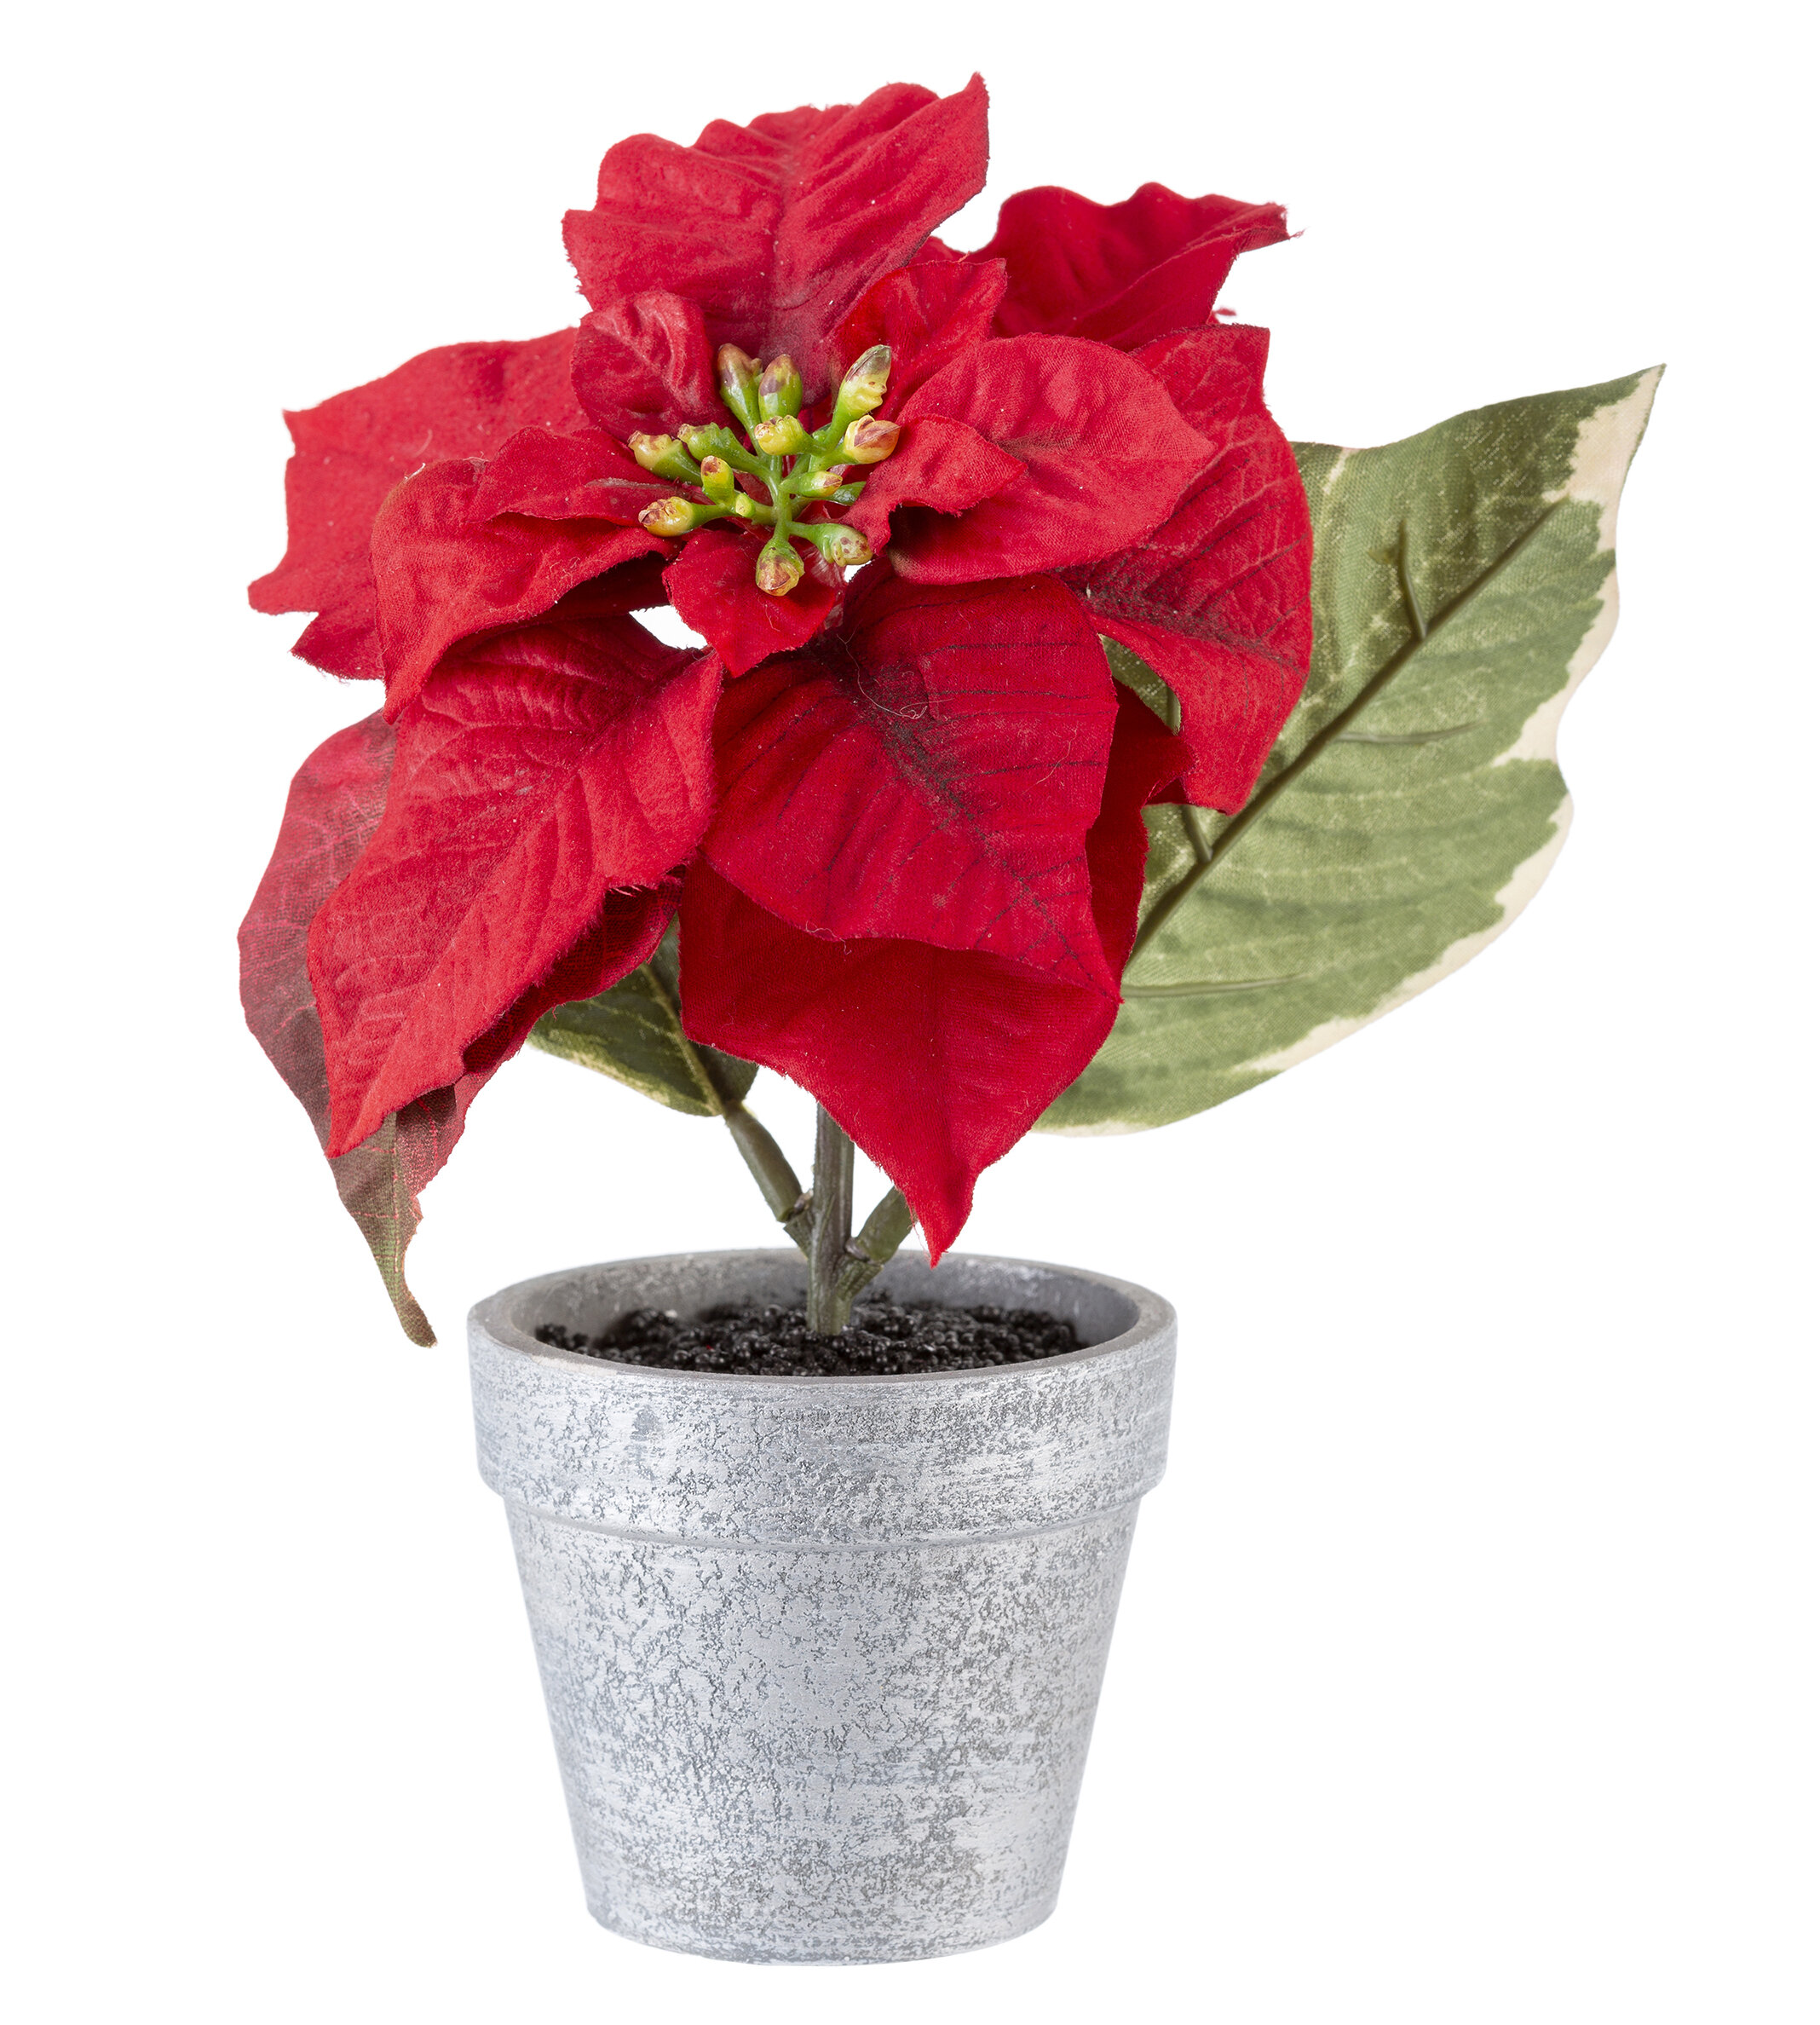 237 & Potted Poinsettia Floral Arrangements and Centerpieces in Pot